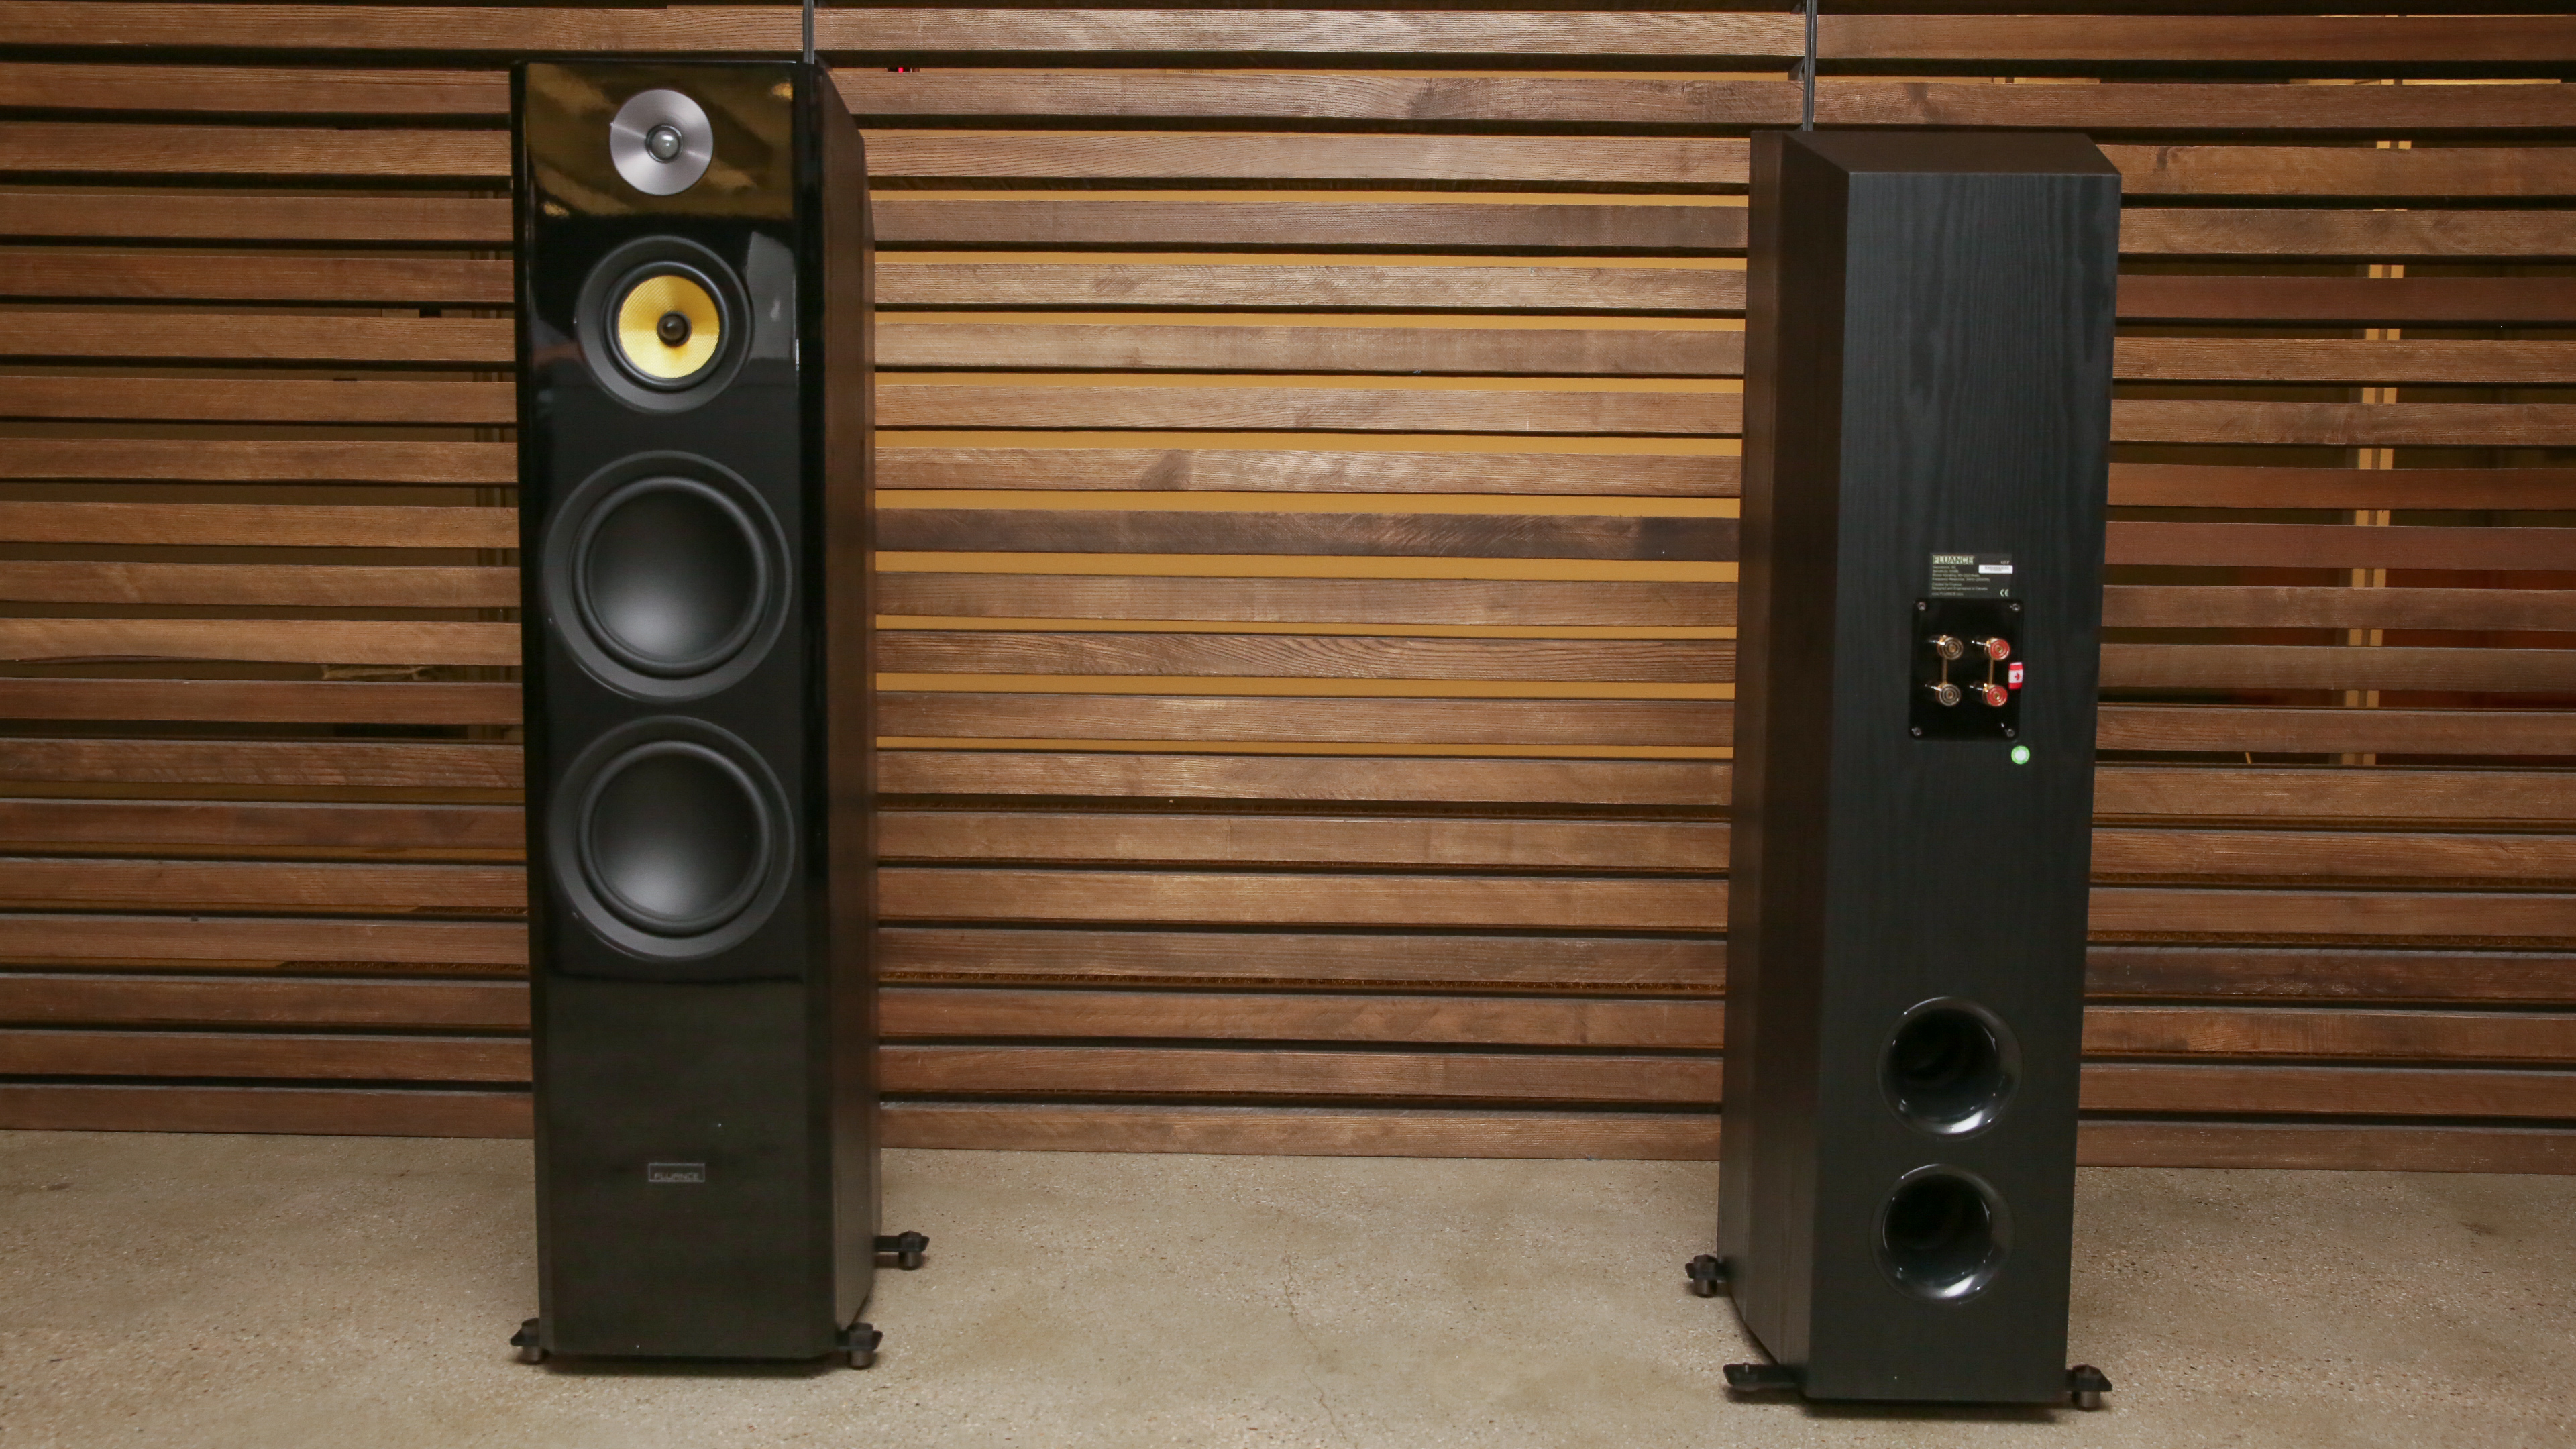 Video: Fluance's high-end speakers disappoint where it counts